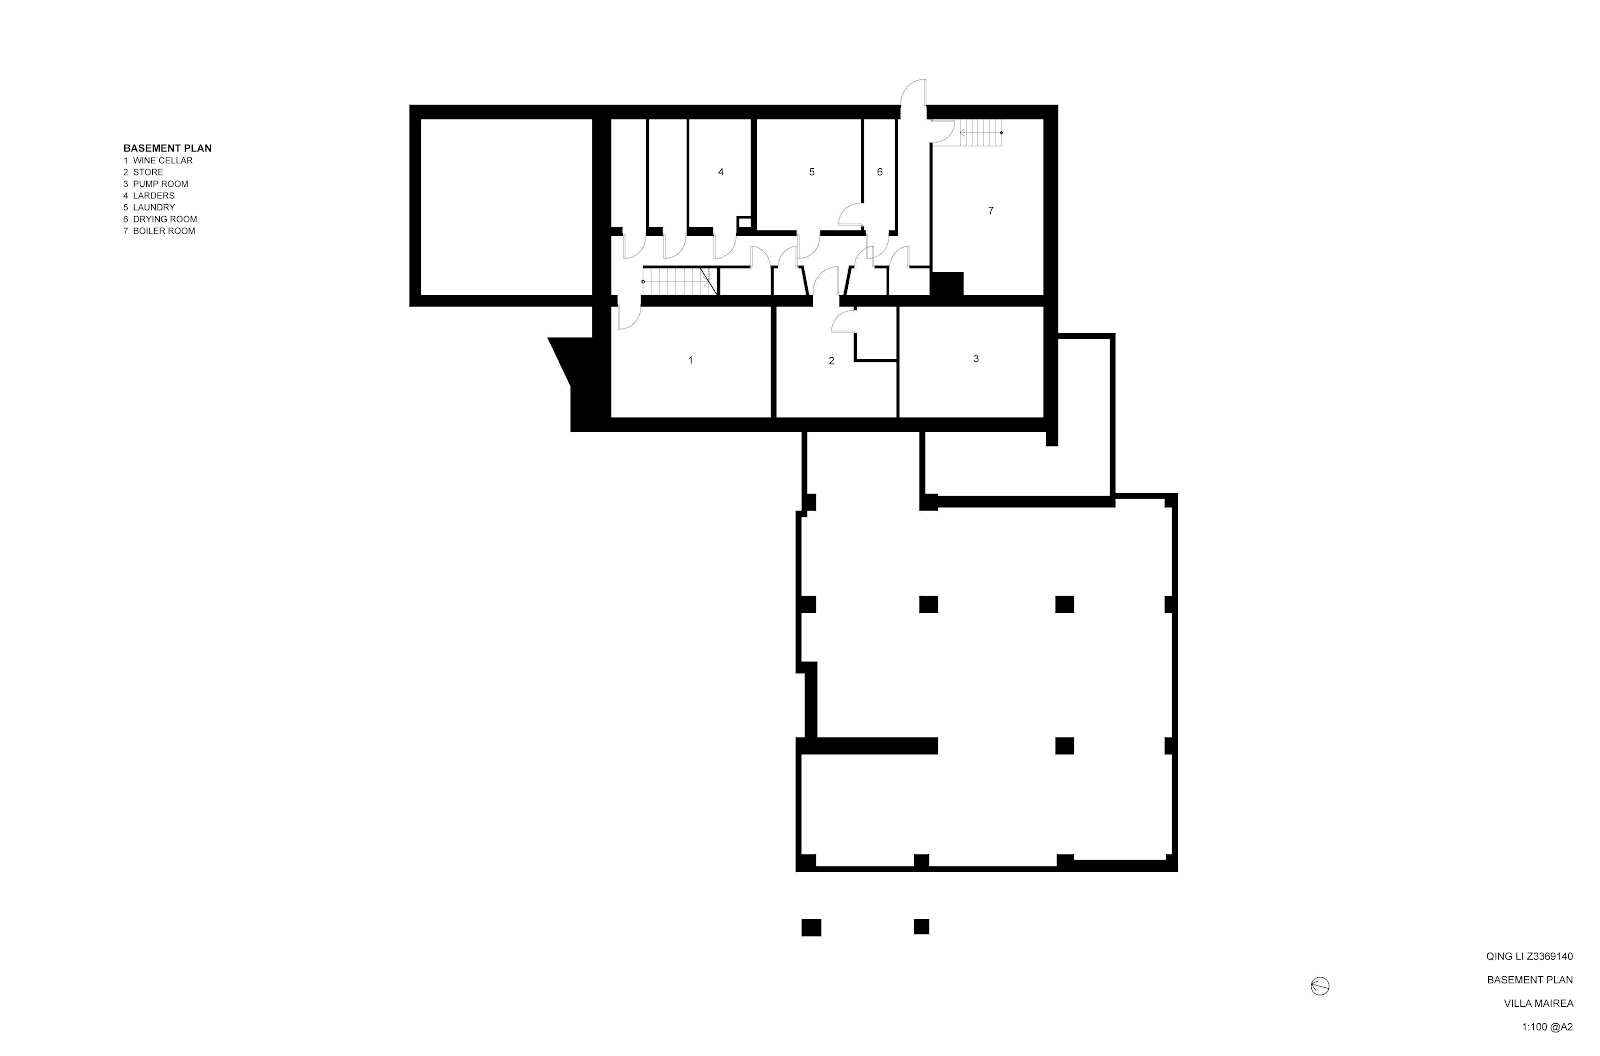 Royalty Free Stock Photos Sunny Day Crayon Drawing Image4526528 further 555bcd6fe58ece6a9f0001ad National Theatre Haworth Tompkins Ground Floor Plan likewise 1907 Westminster Abbey Floor Plan likewise Index php as well . on floor plan drawing